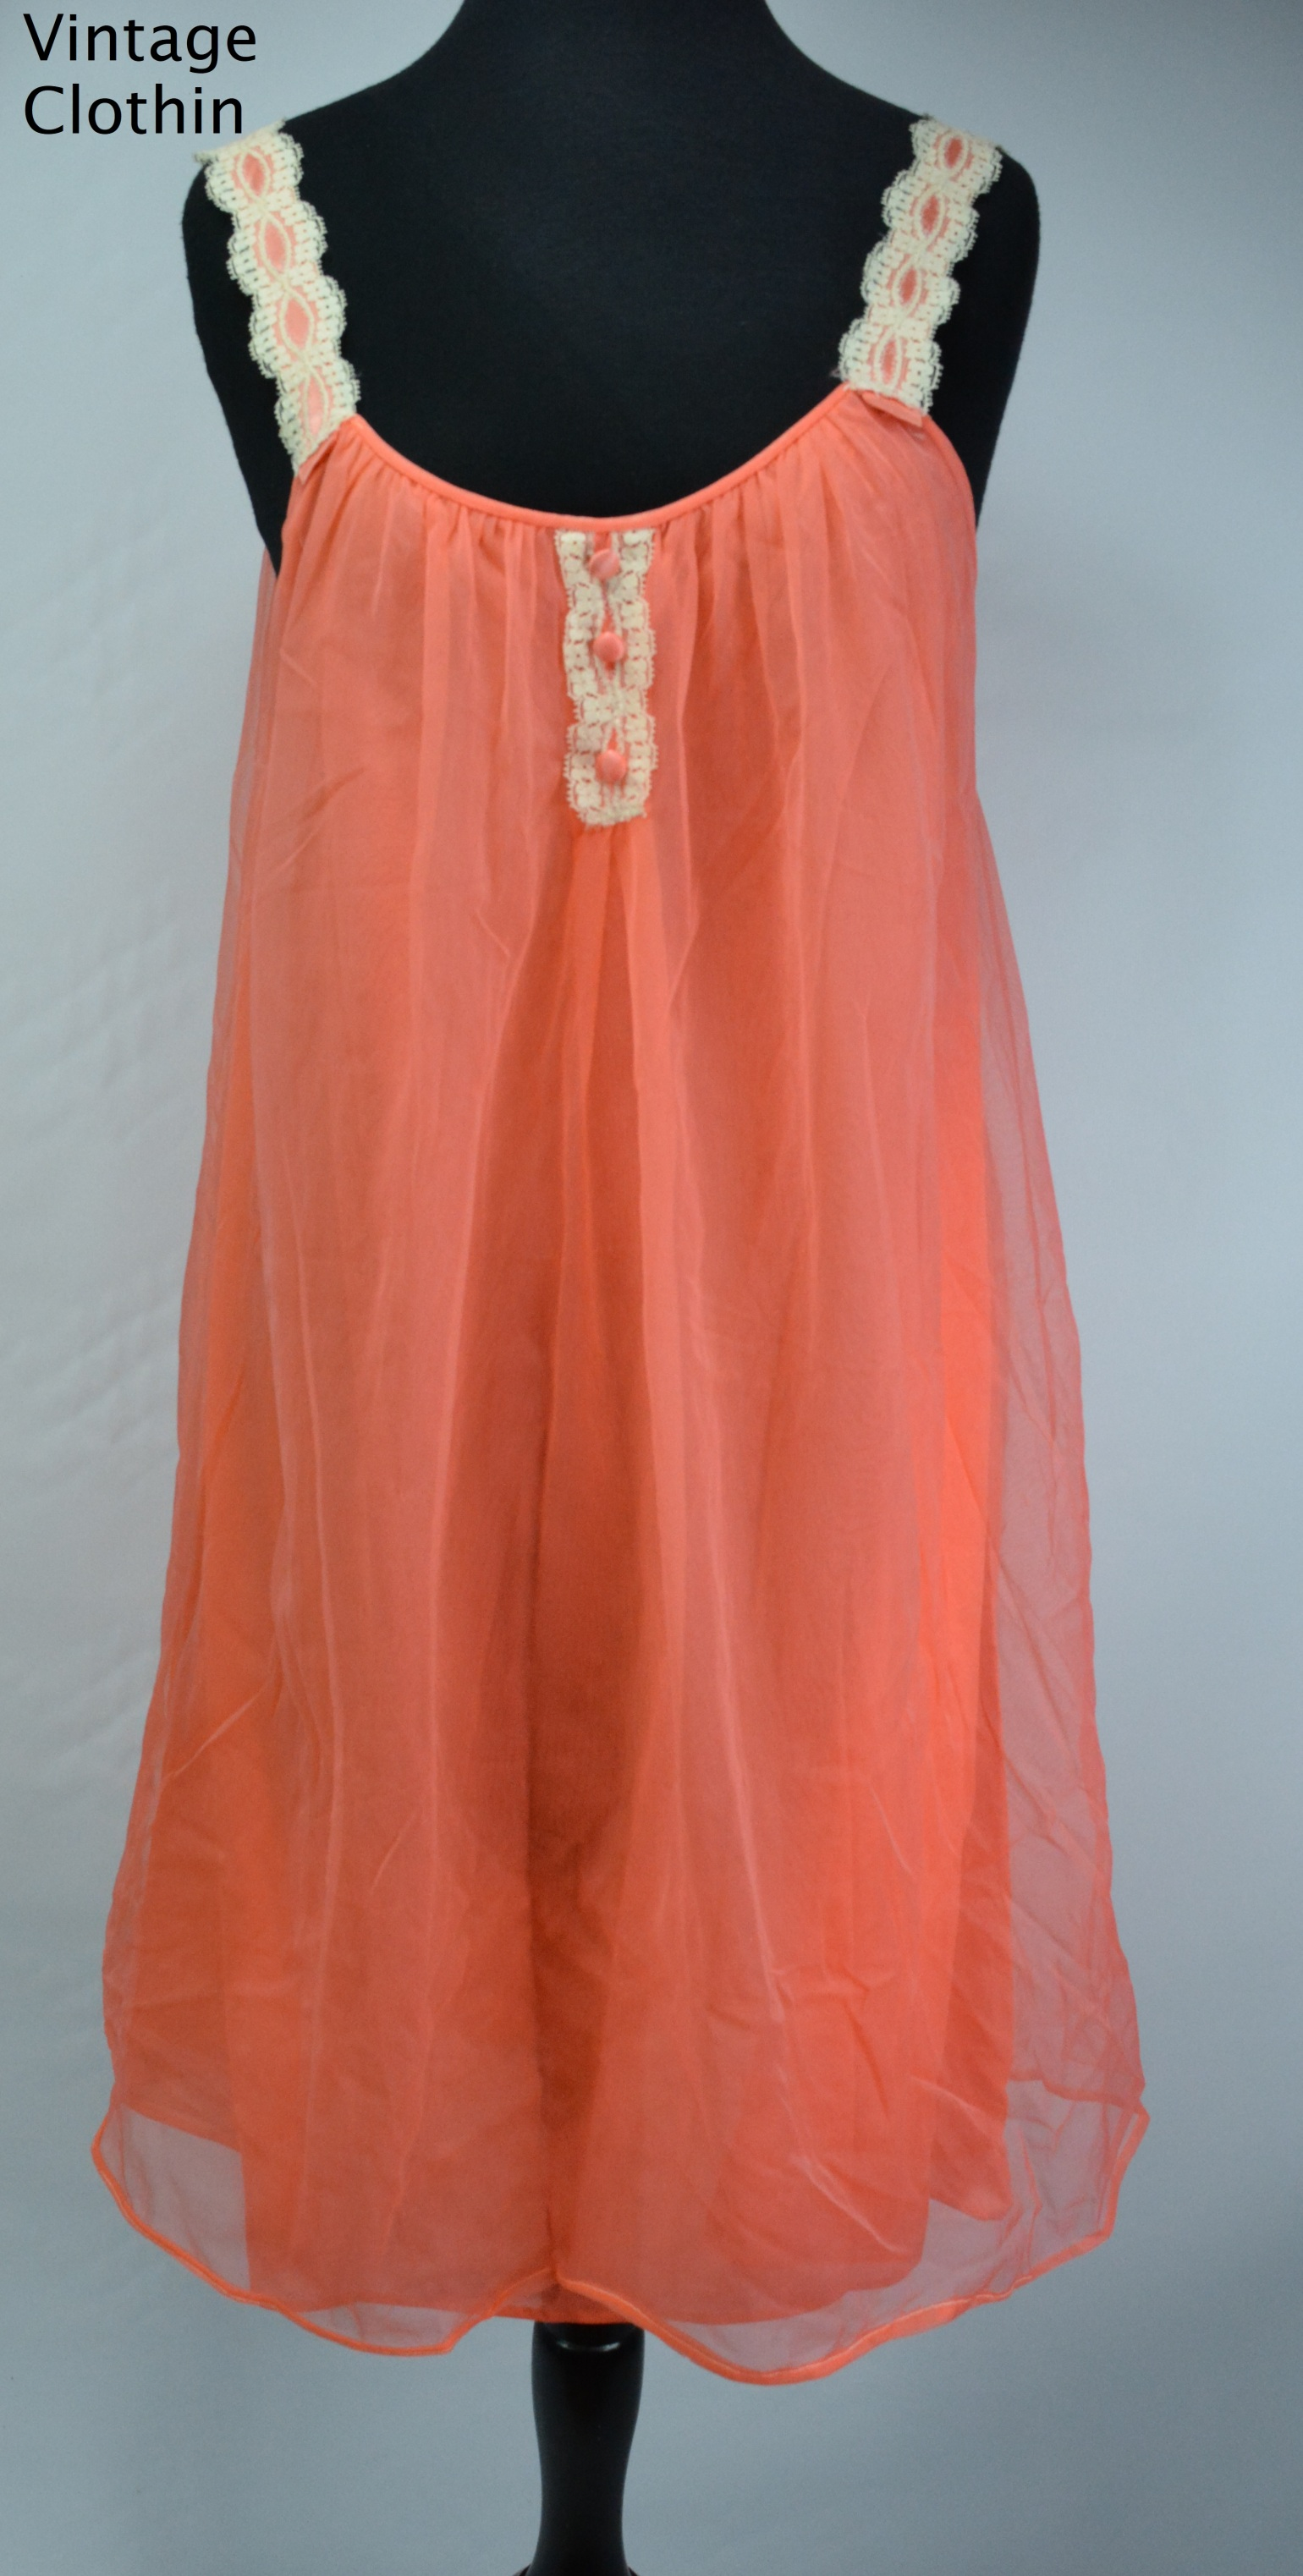 1960s Orange Baby Doll Nightgown